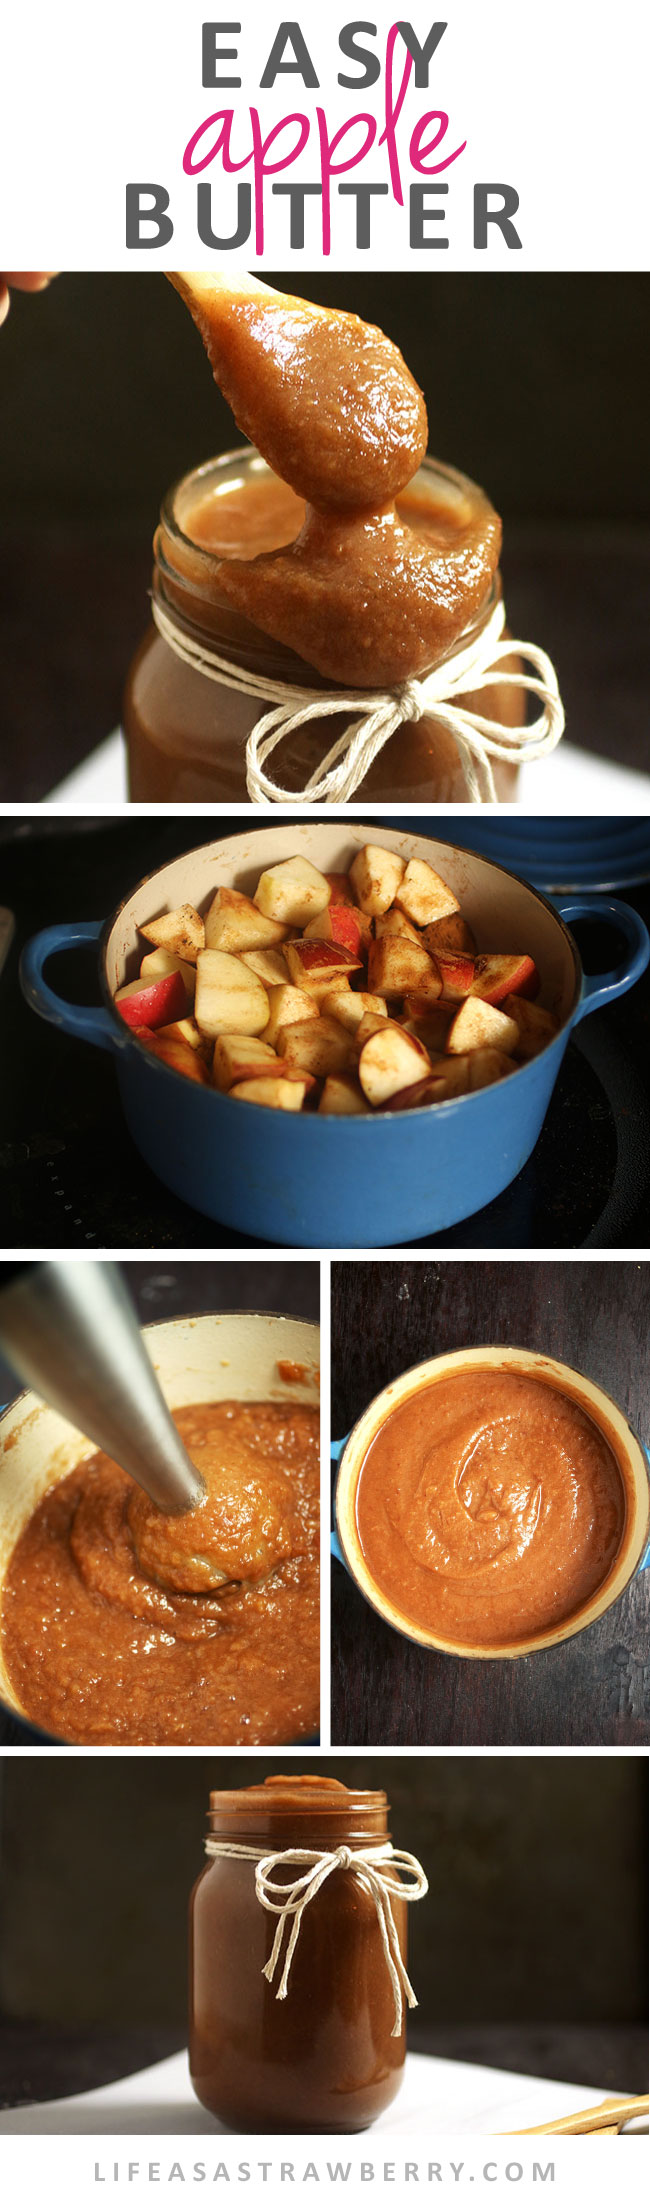 Quick easy apple butter recipes